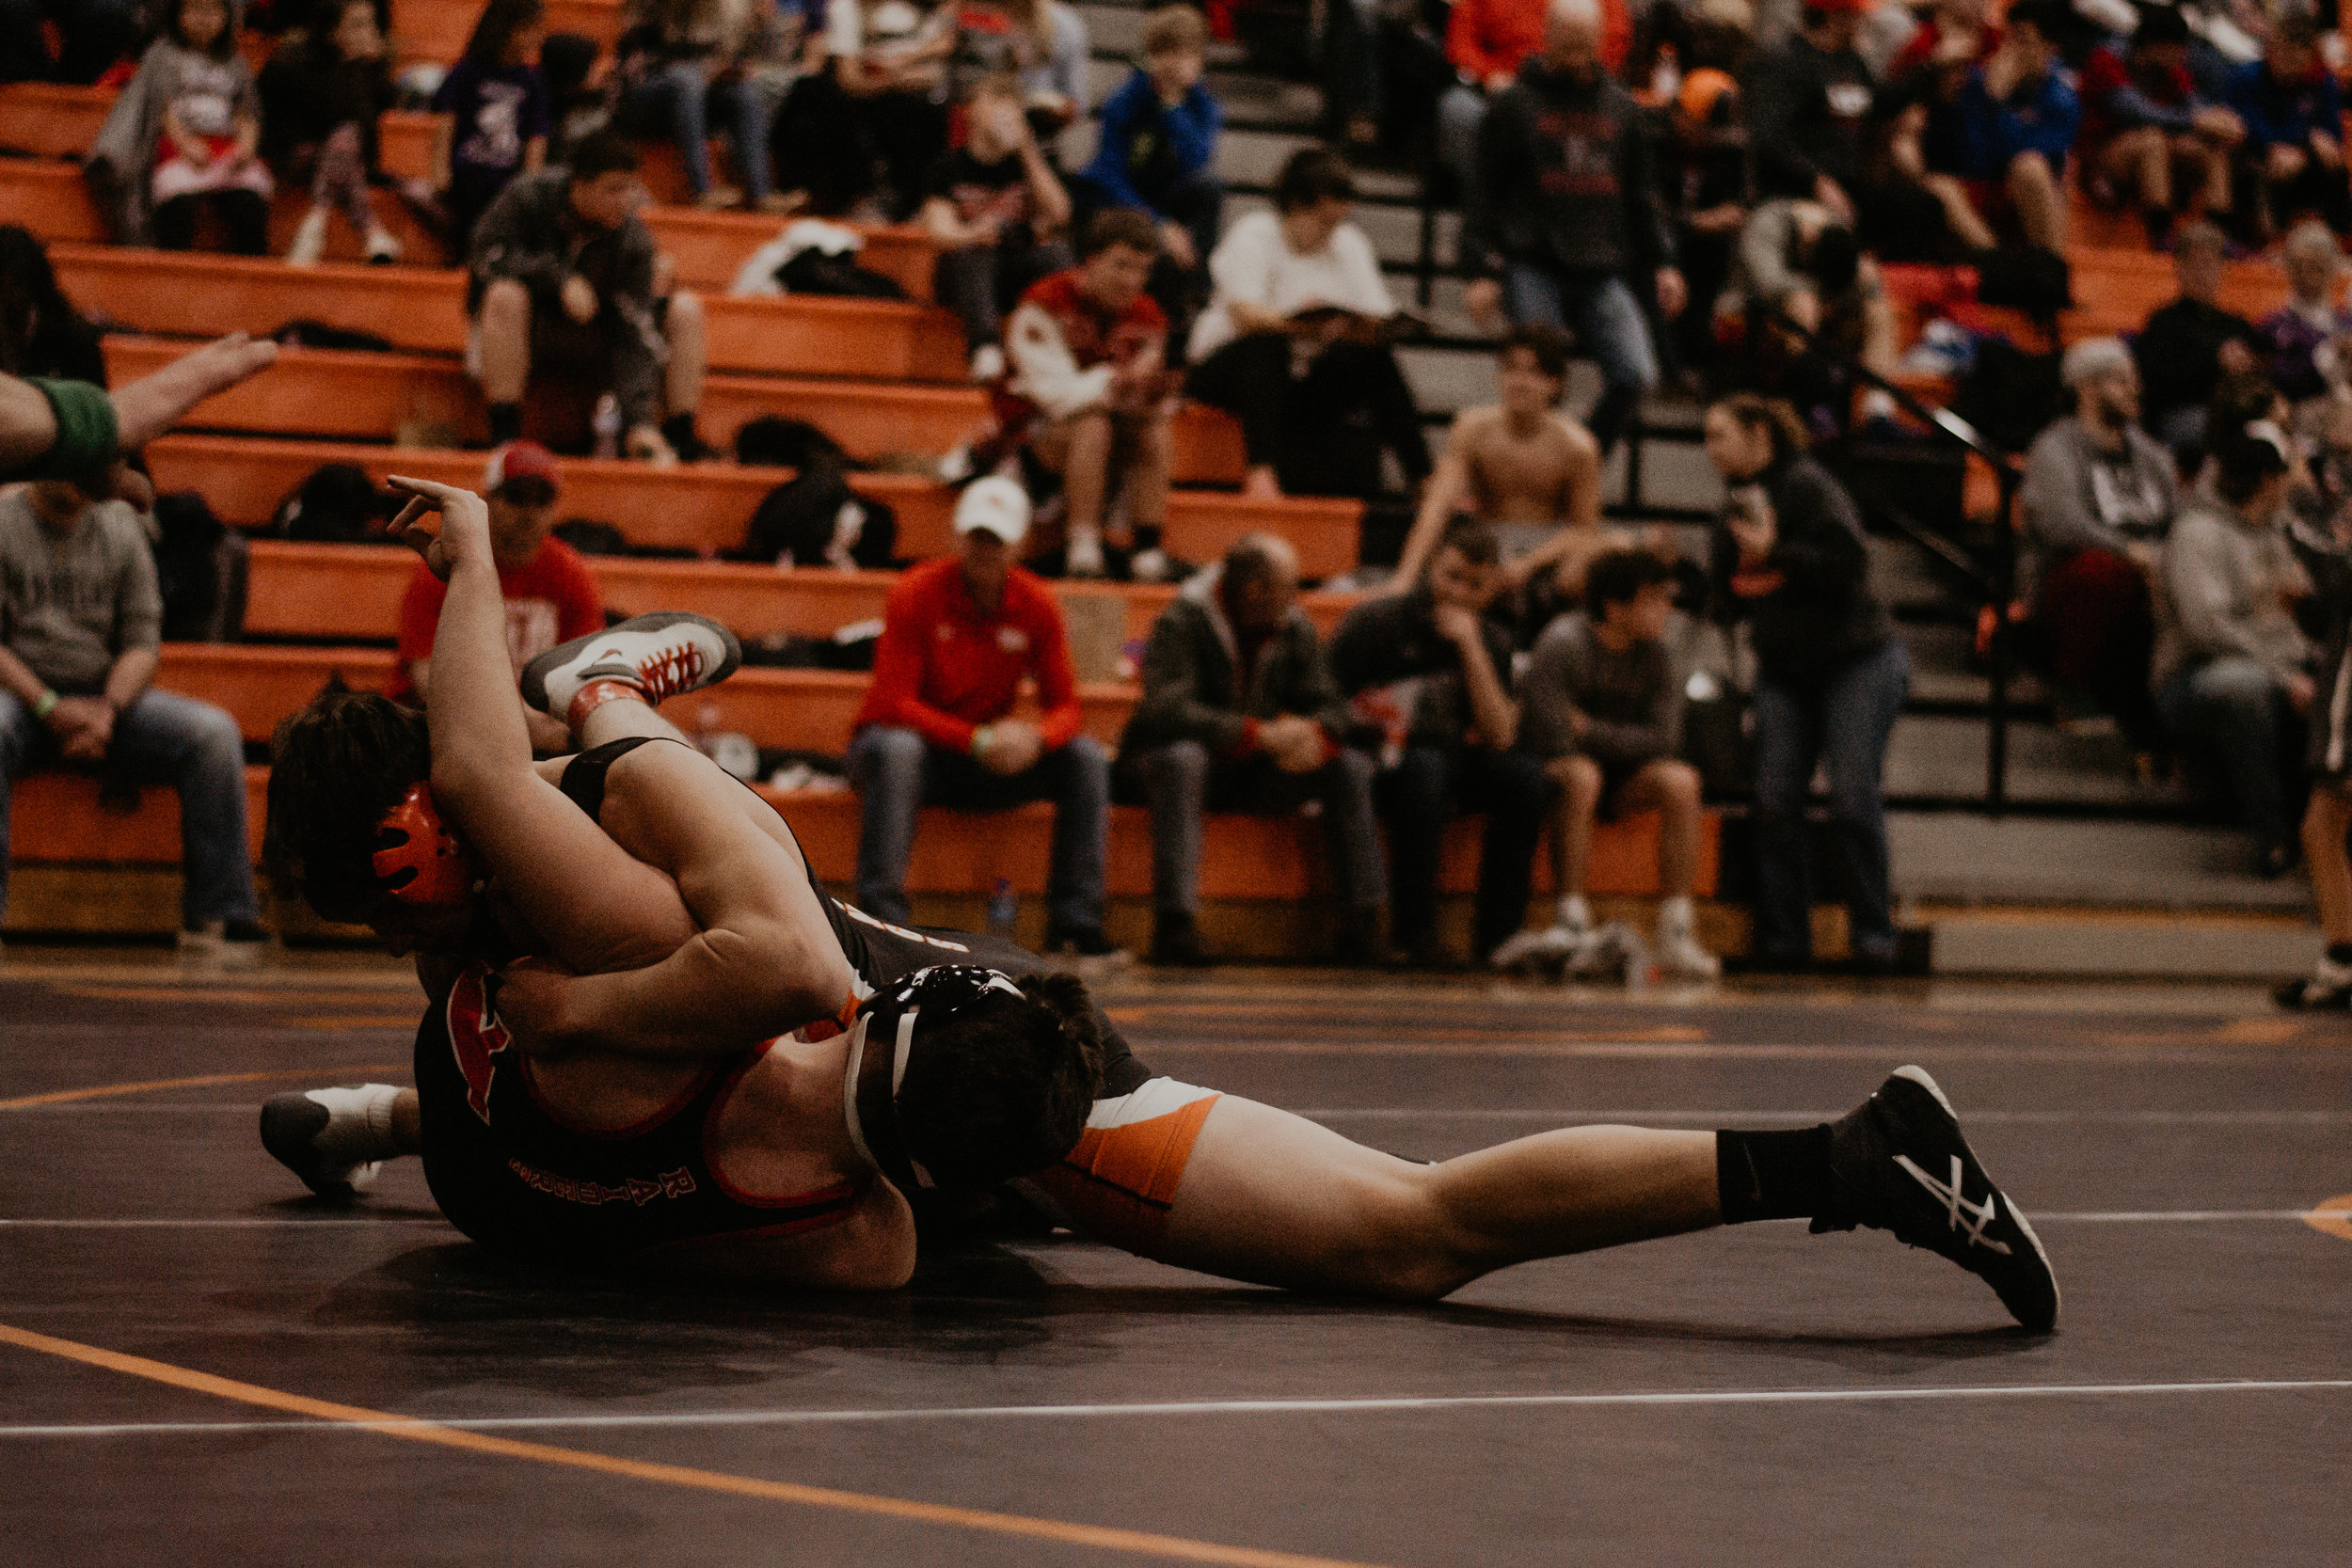 160 – Chase Pywell (31-12) placed 4th